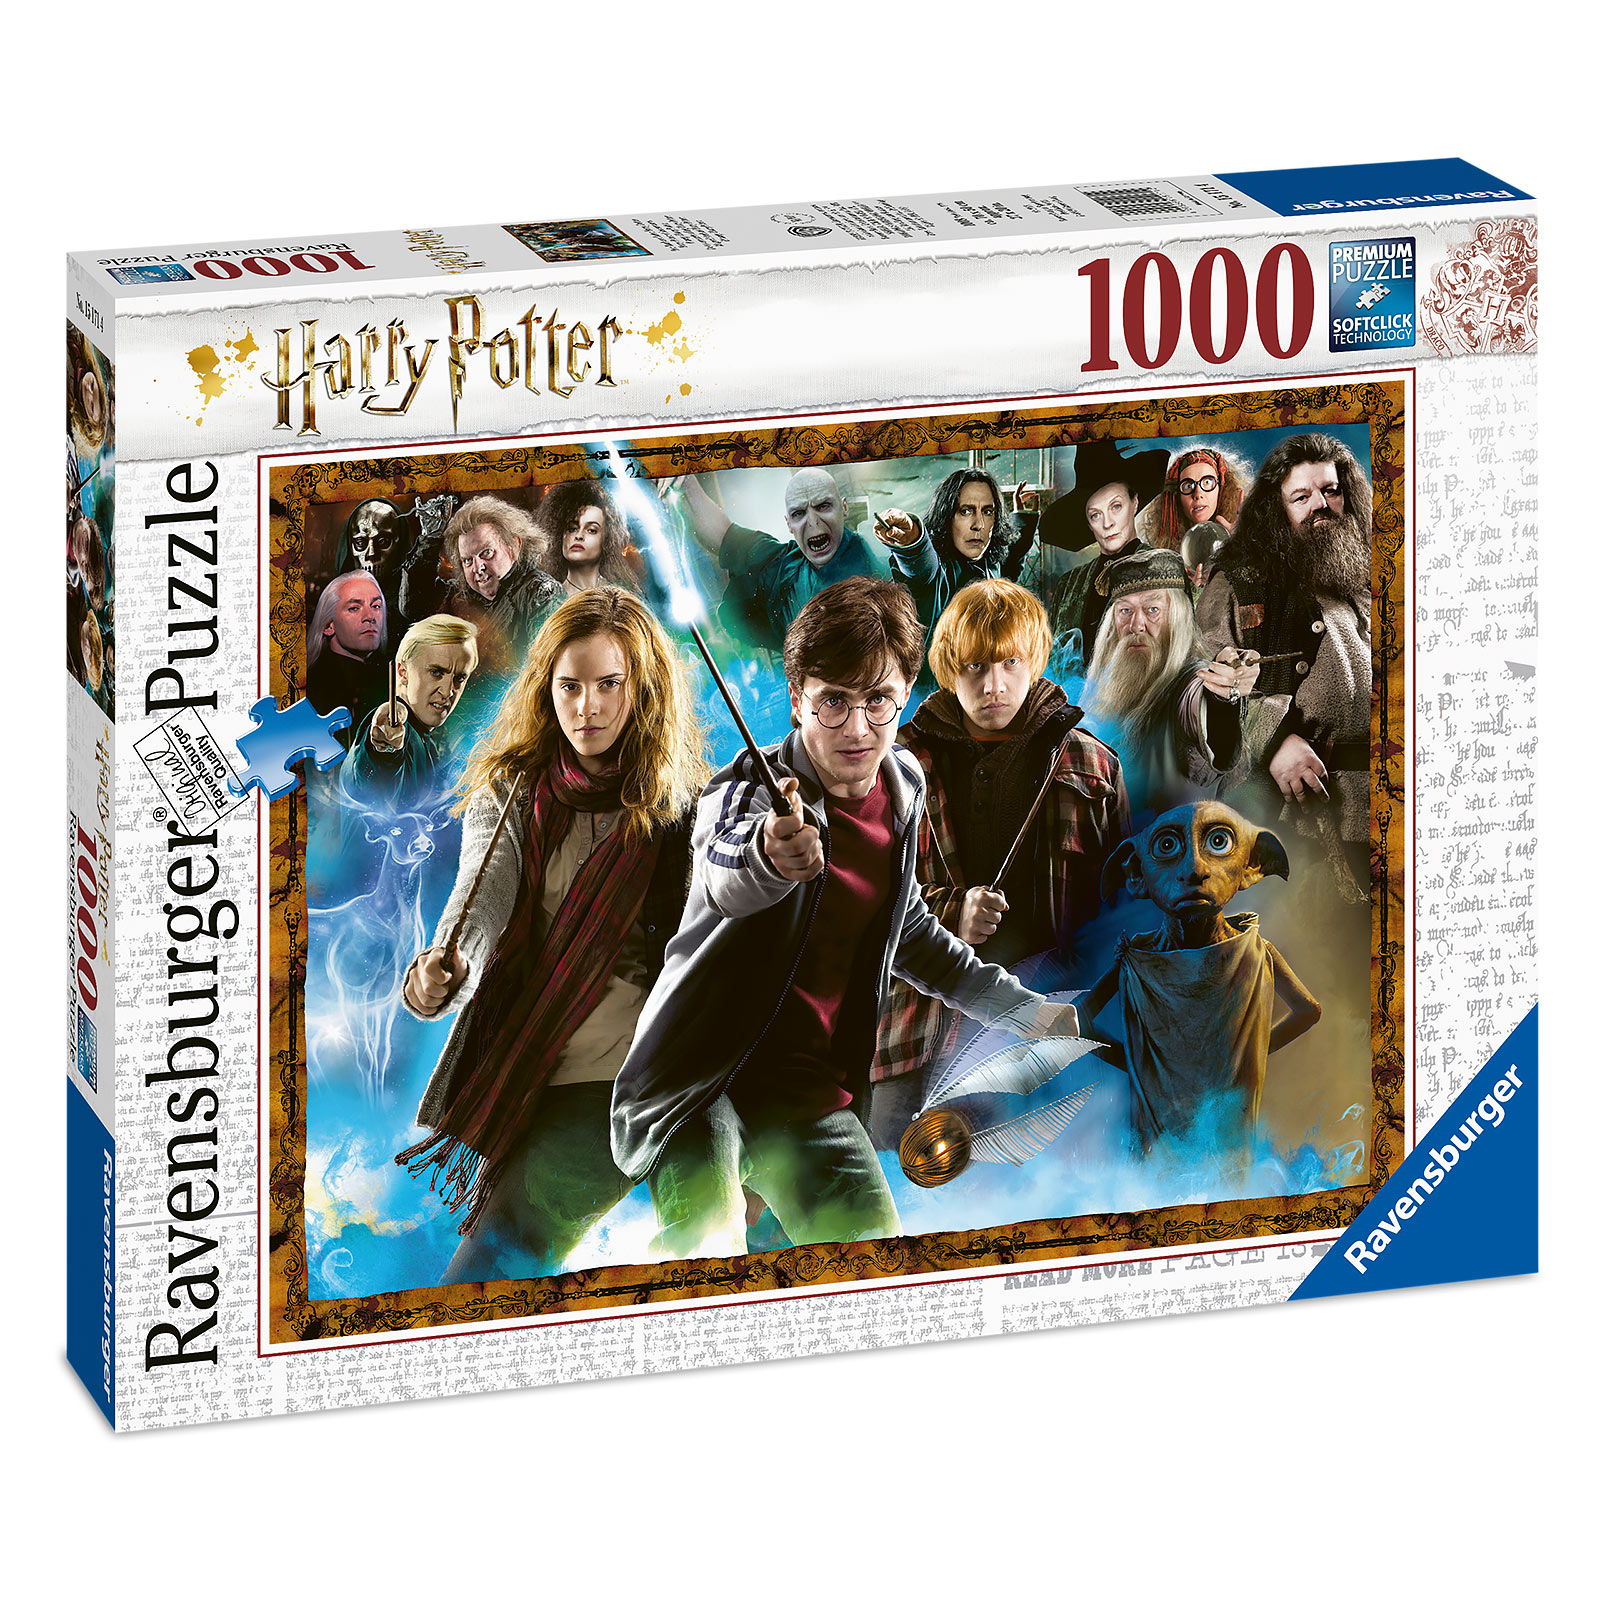 Harry Potter - Charakter Collage Puzzle